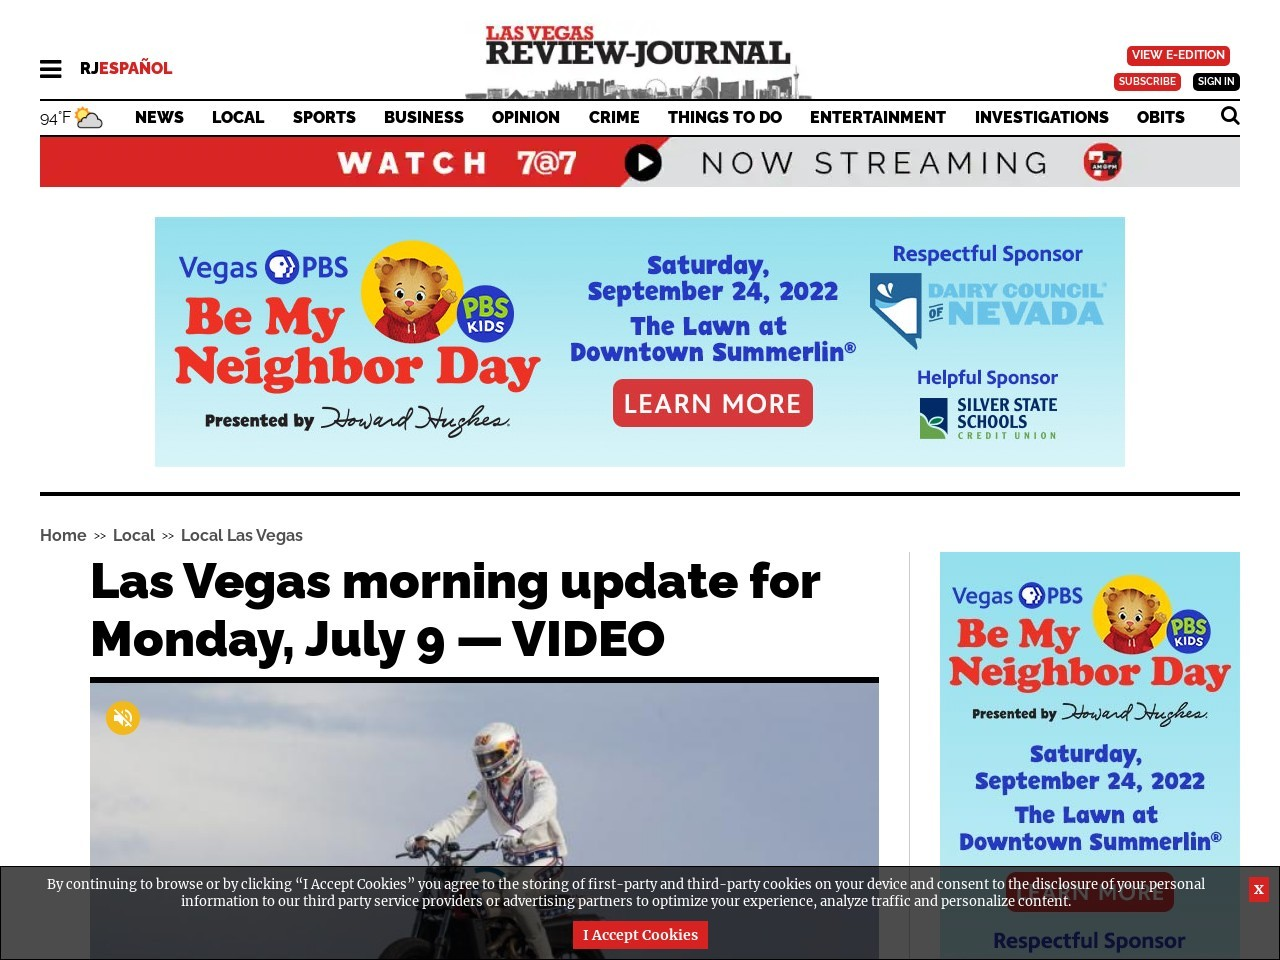 Las Vegas morning update for Monday, July 9 — VIDEO